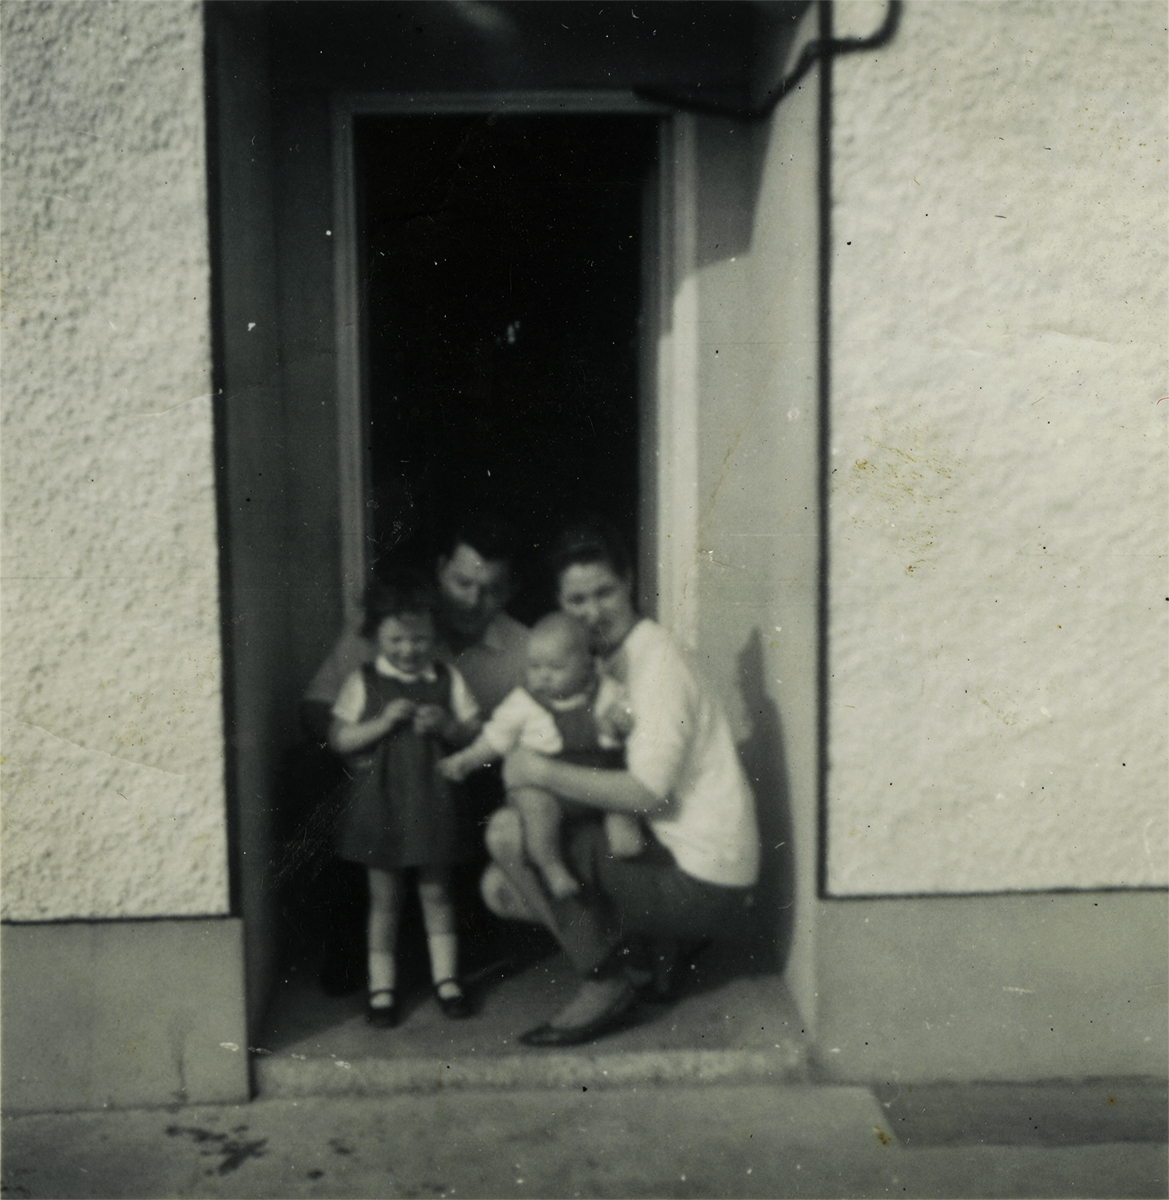 Conlon // County Monaghan :: Seán & Kathleen McGreevey with their children Paula & baby Ken at their front door